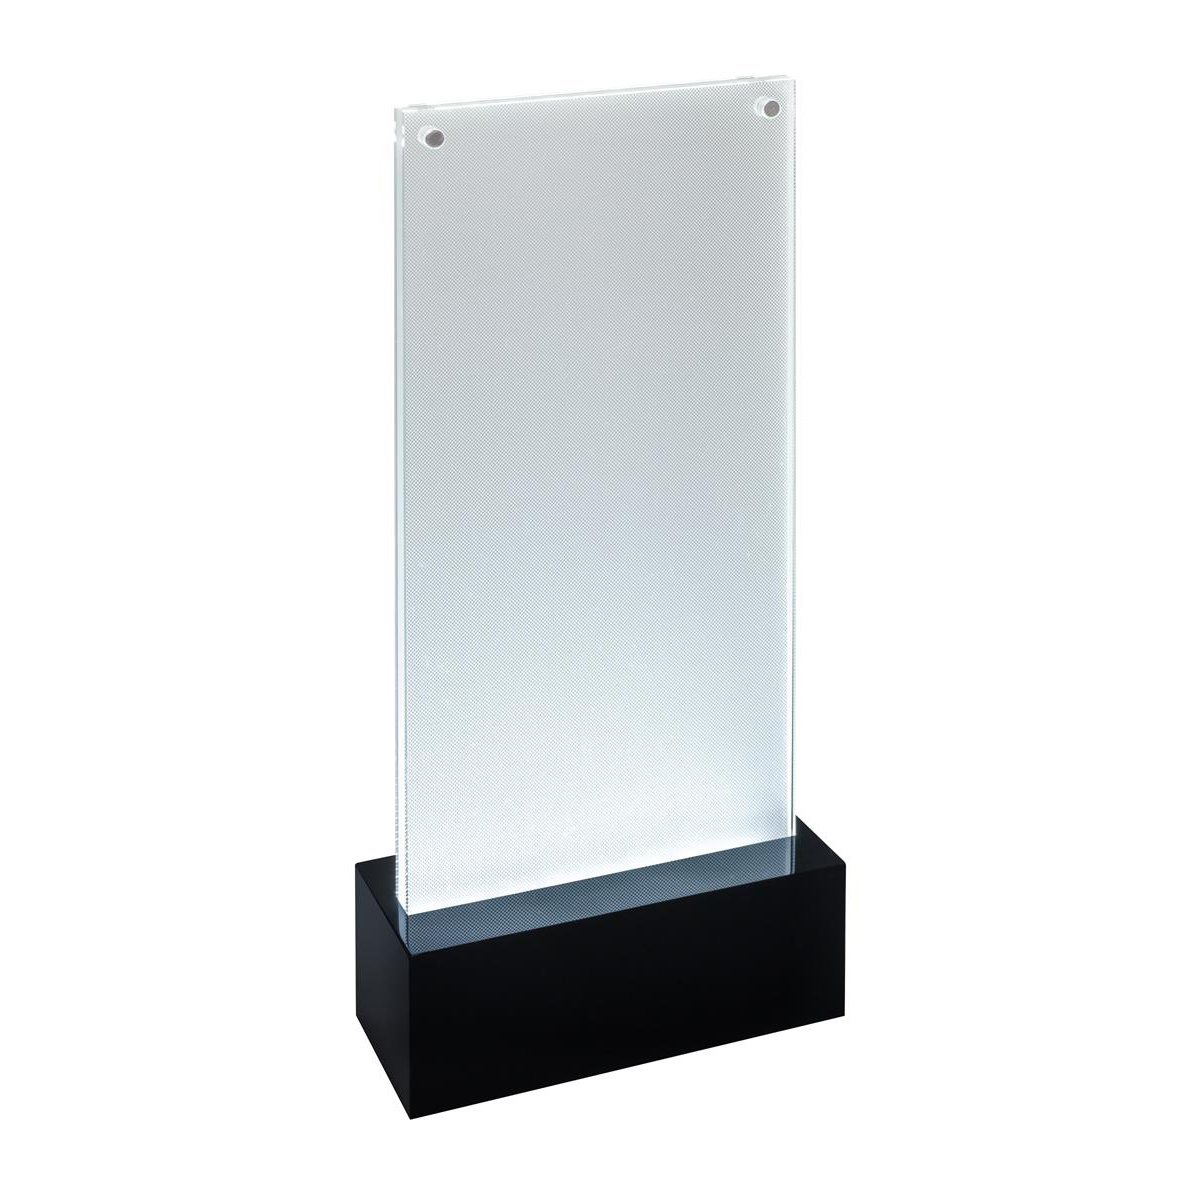 Sigel Table-top Display Frame LED Double-sided Luminous DL Clear/Black Ref TA424